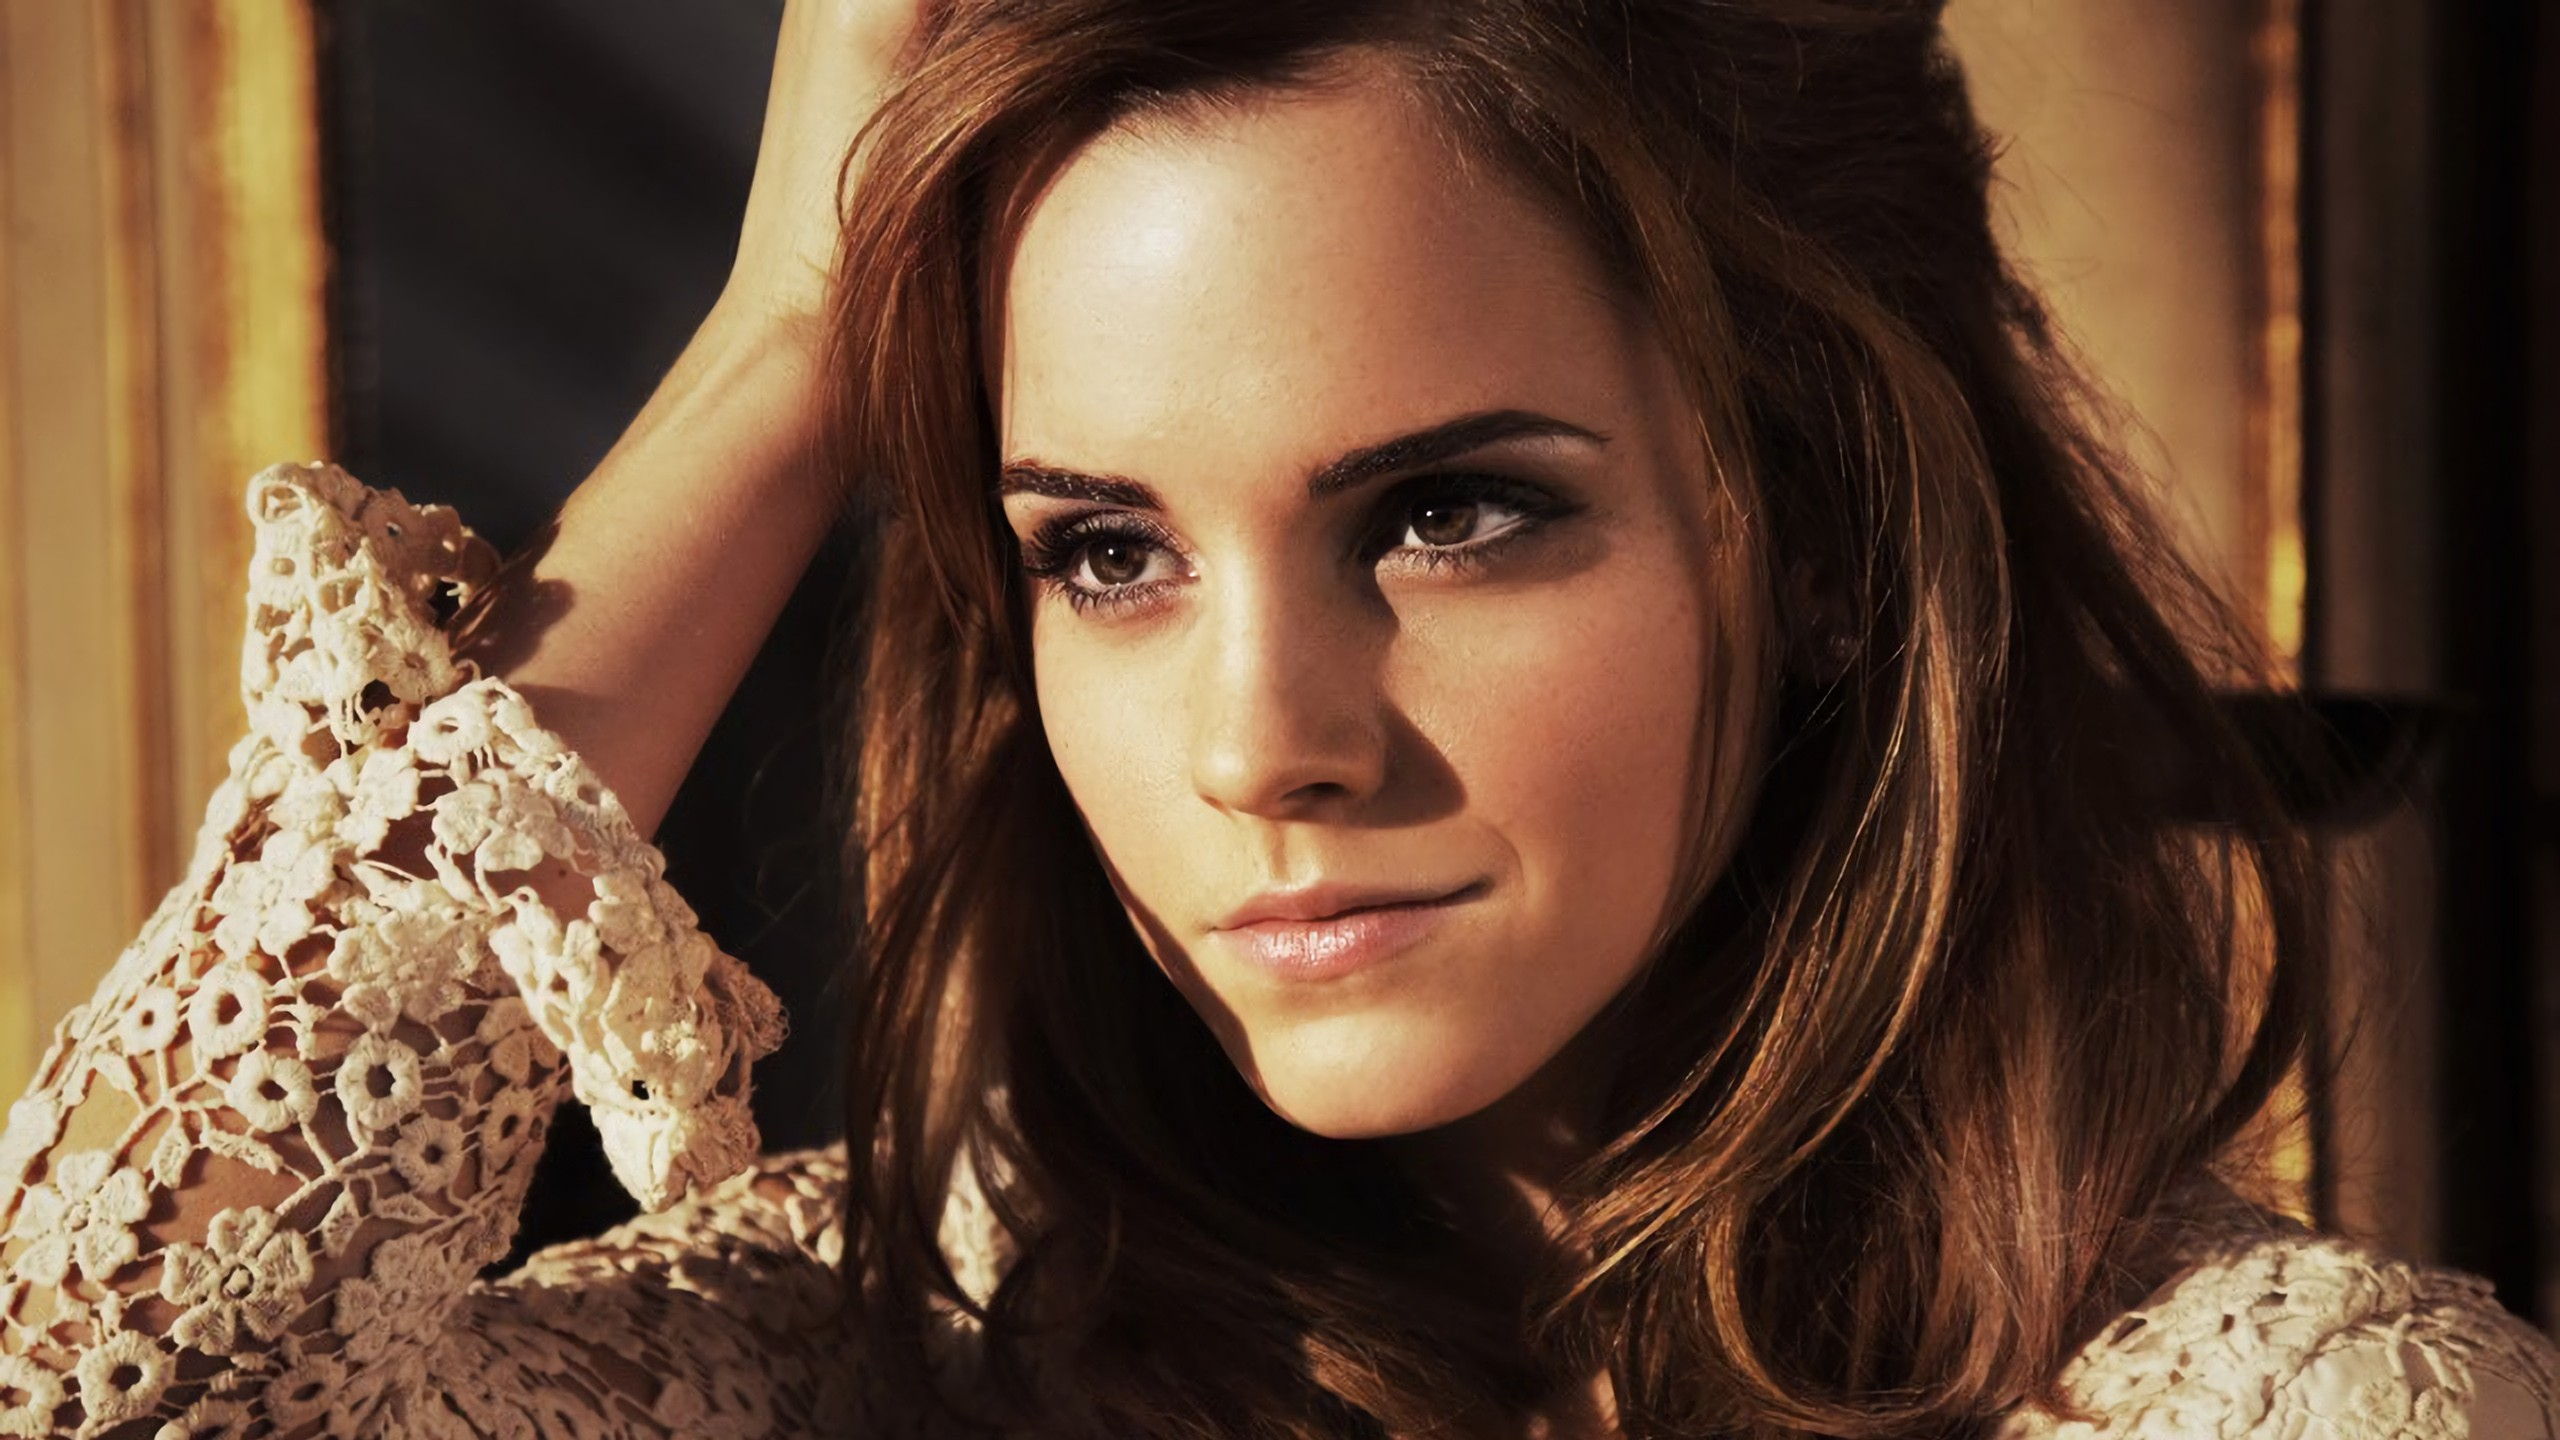 2560x1440 emma watson 21 1440p resolution hd 4k wallpapers - Emma watson wallpaper free download ...